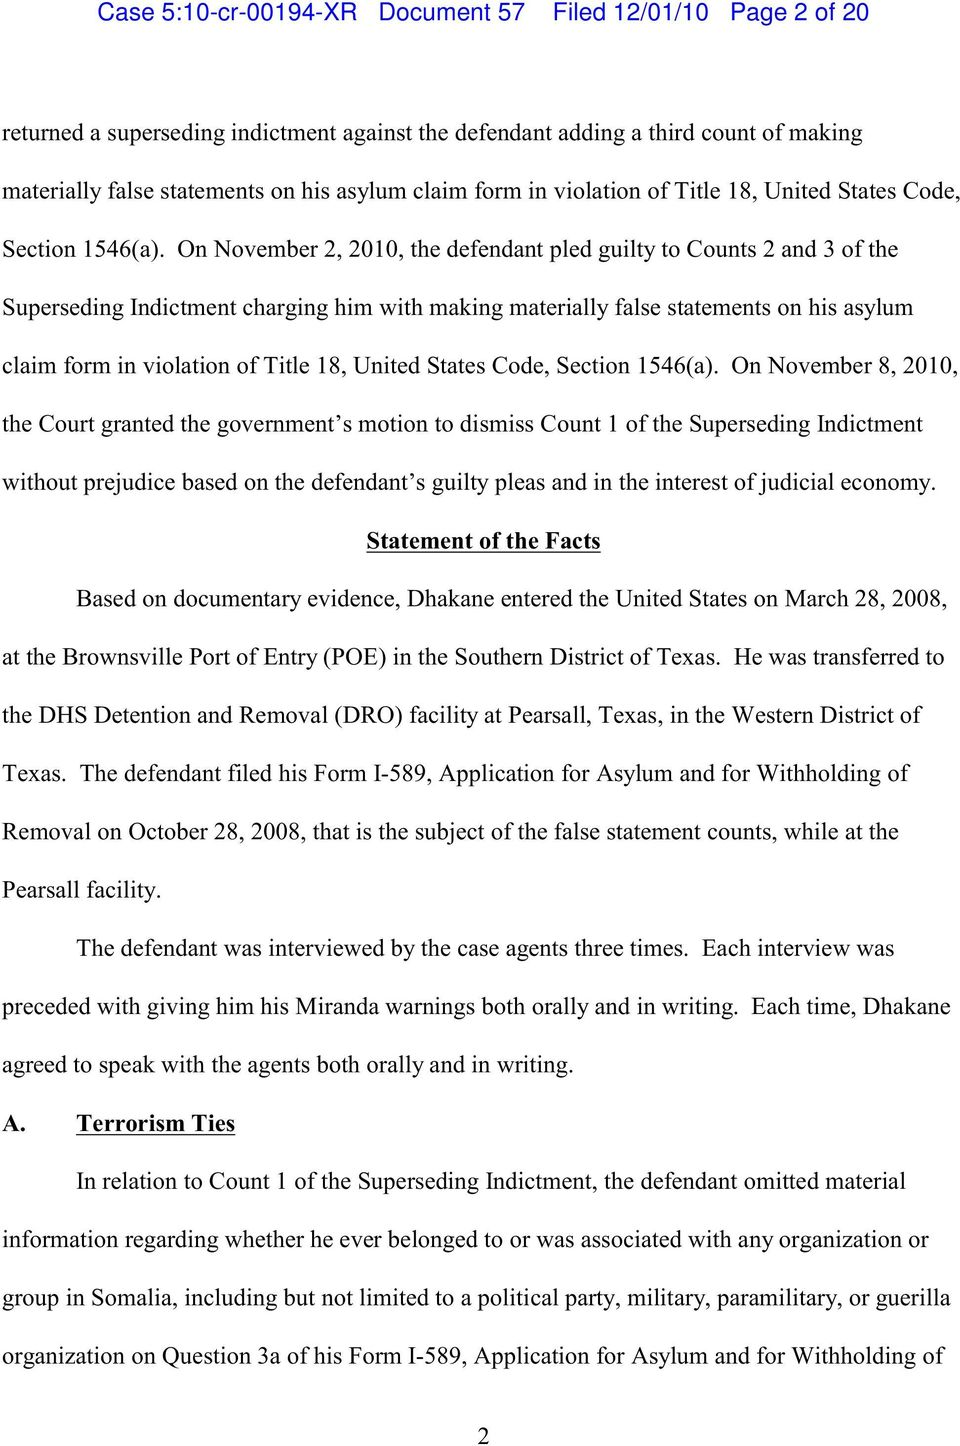 On November 2, 2010, the defendant pled guilty to Counts 2 and 3 of the Superseding Indictment charging him with making materially false statements on his asylum claim  On November 8, 2010, the Court